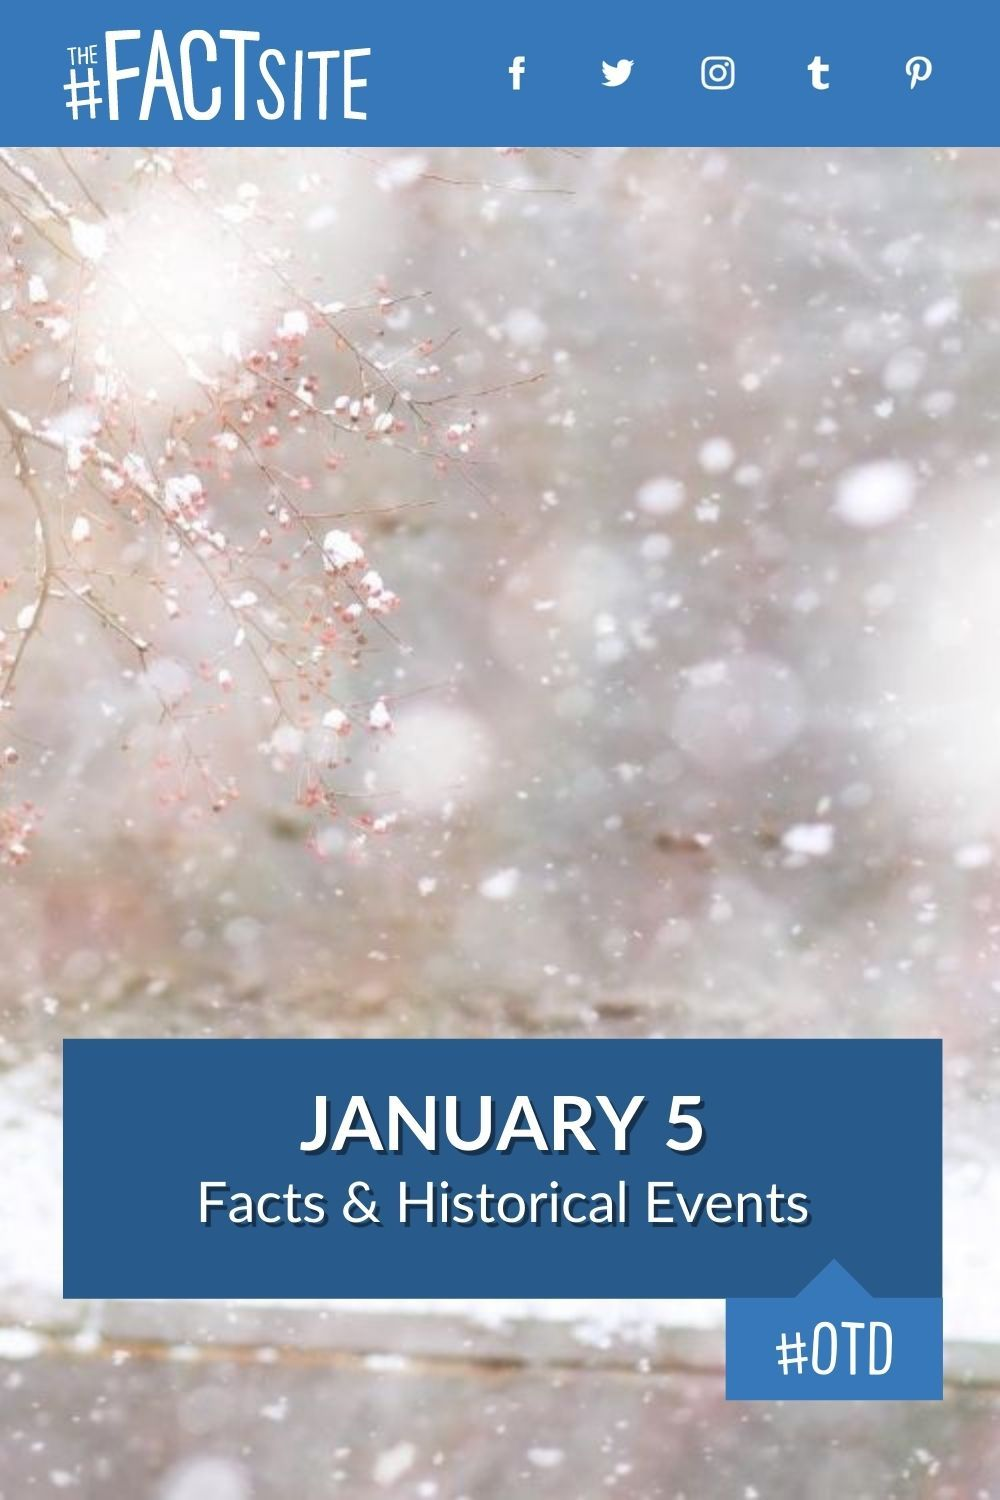 Facts & Historic Events That Happened on January 5